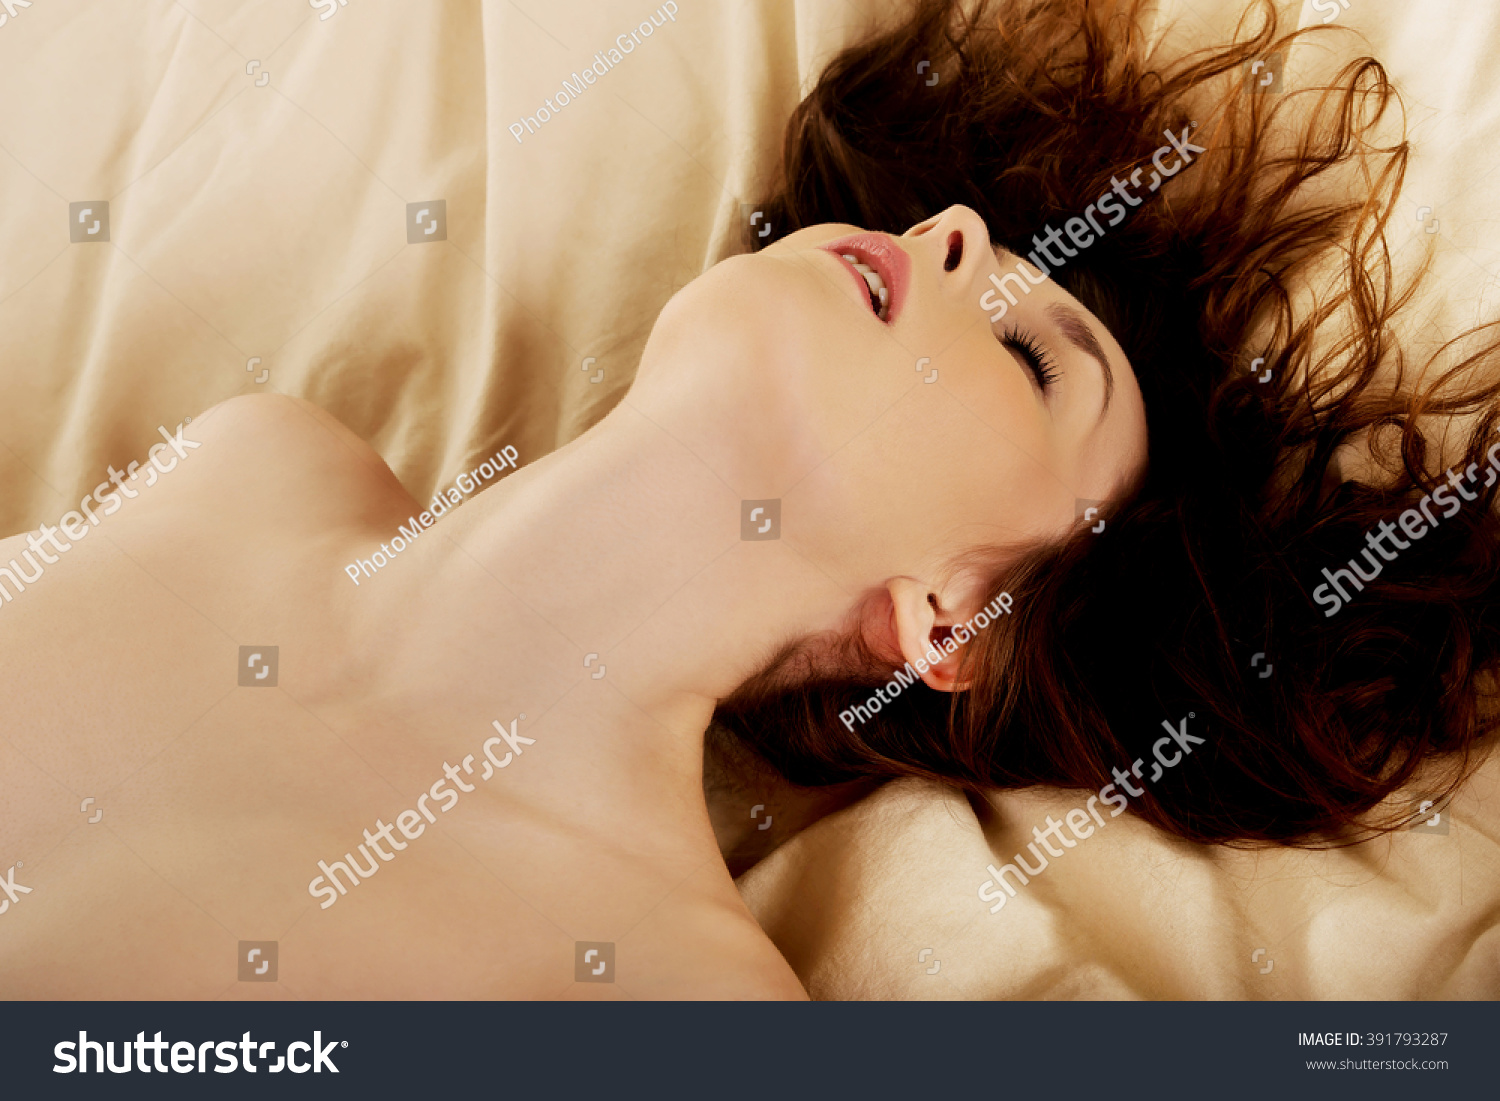 Woman Bed Getting Orgasm Stock Photo 391793287 - Shutterstock-3849